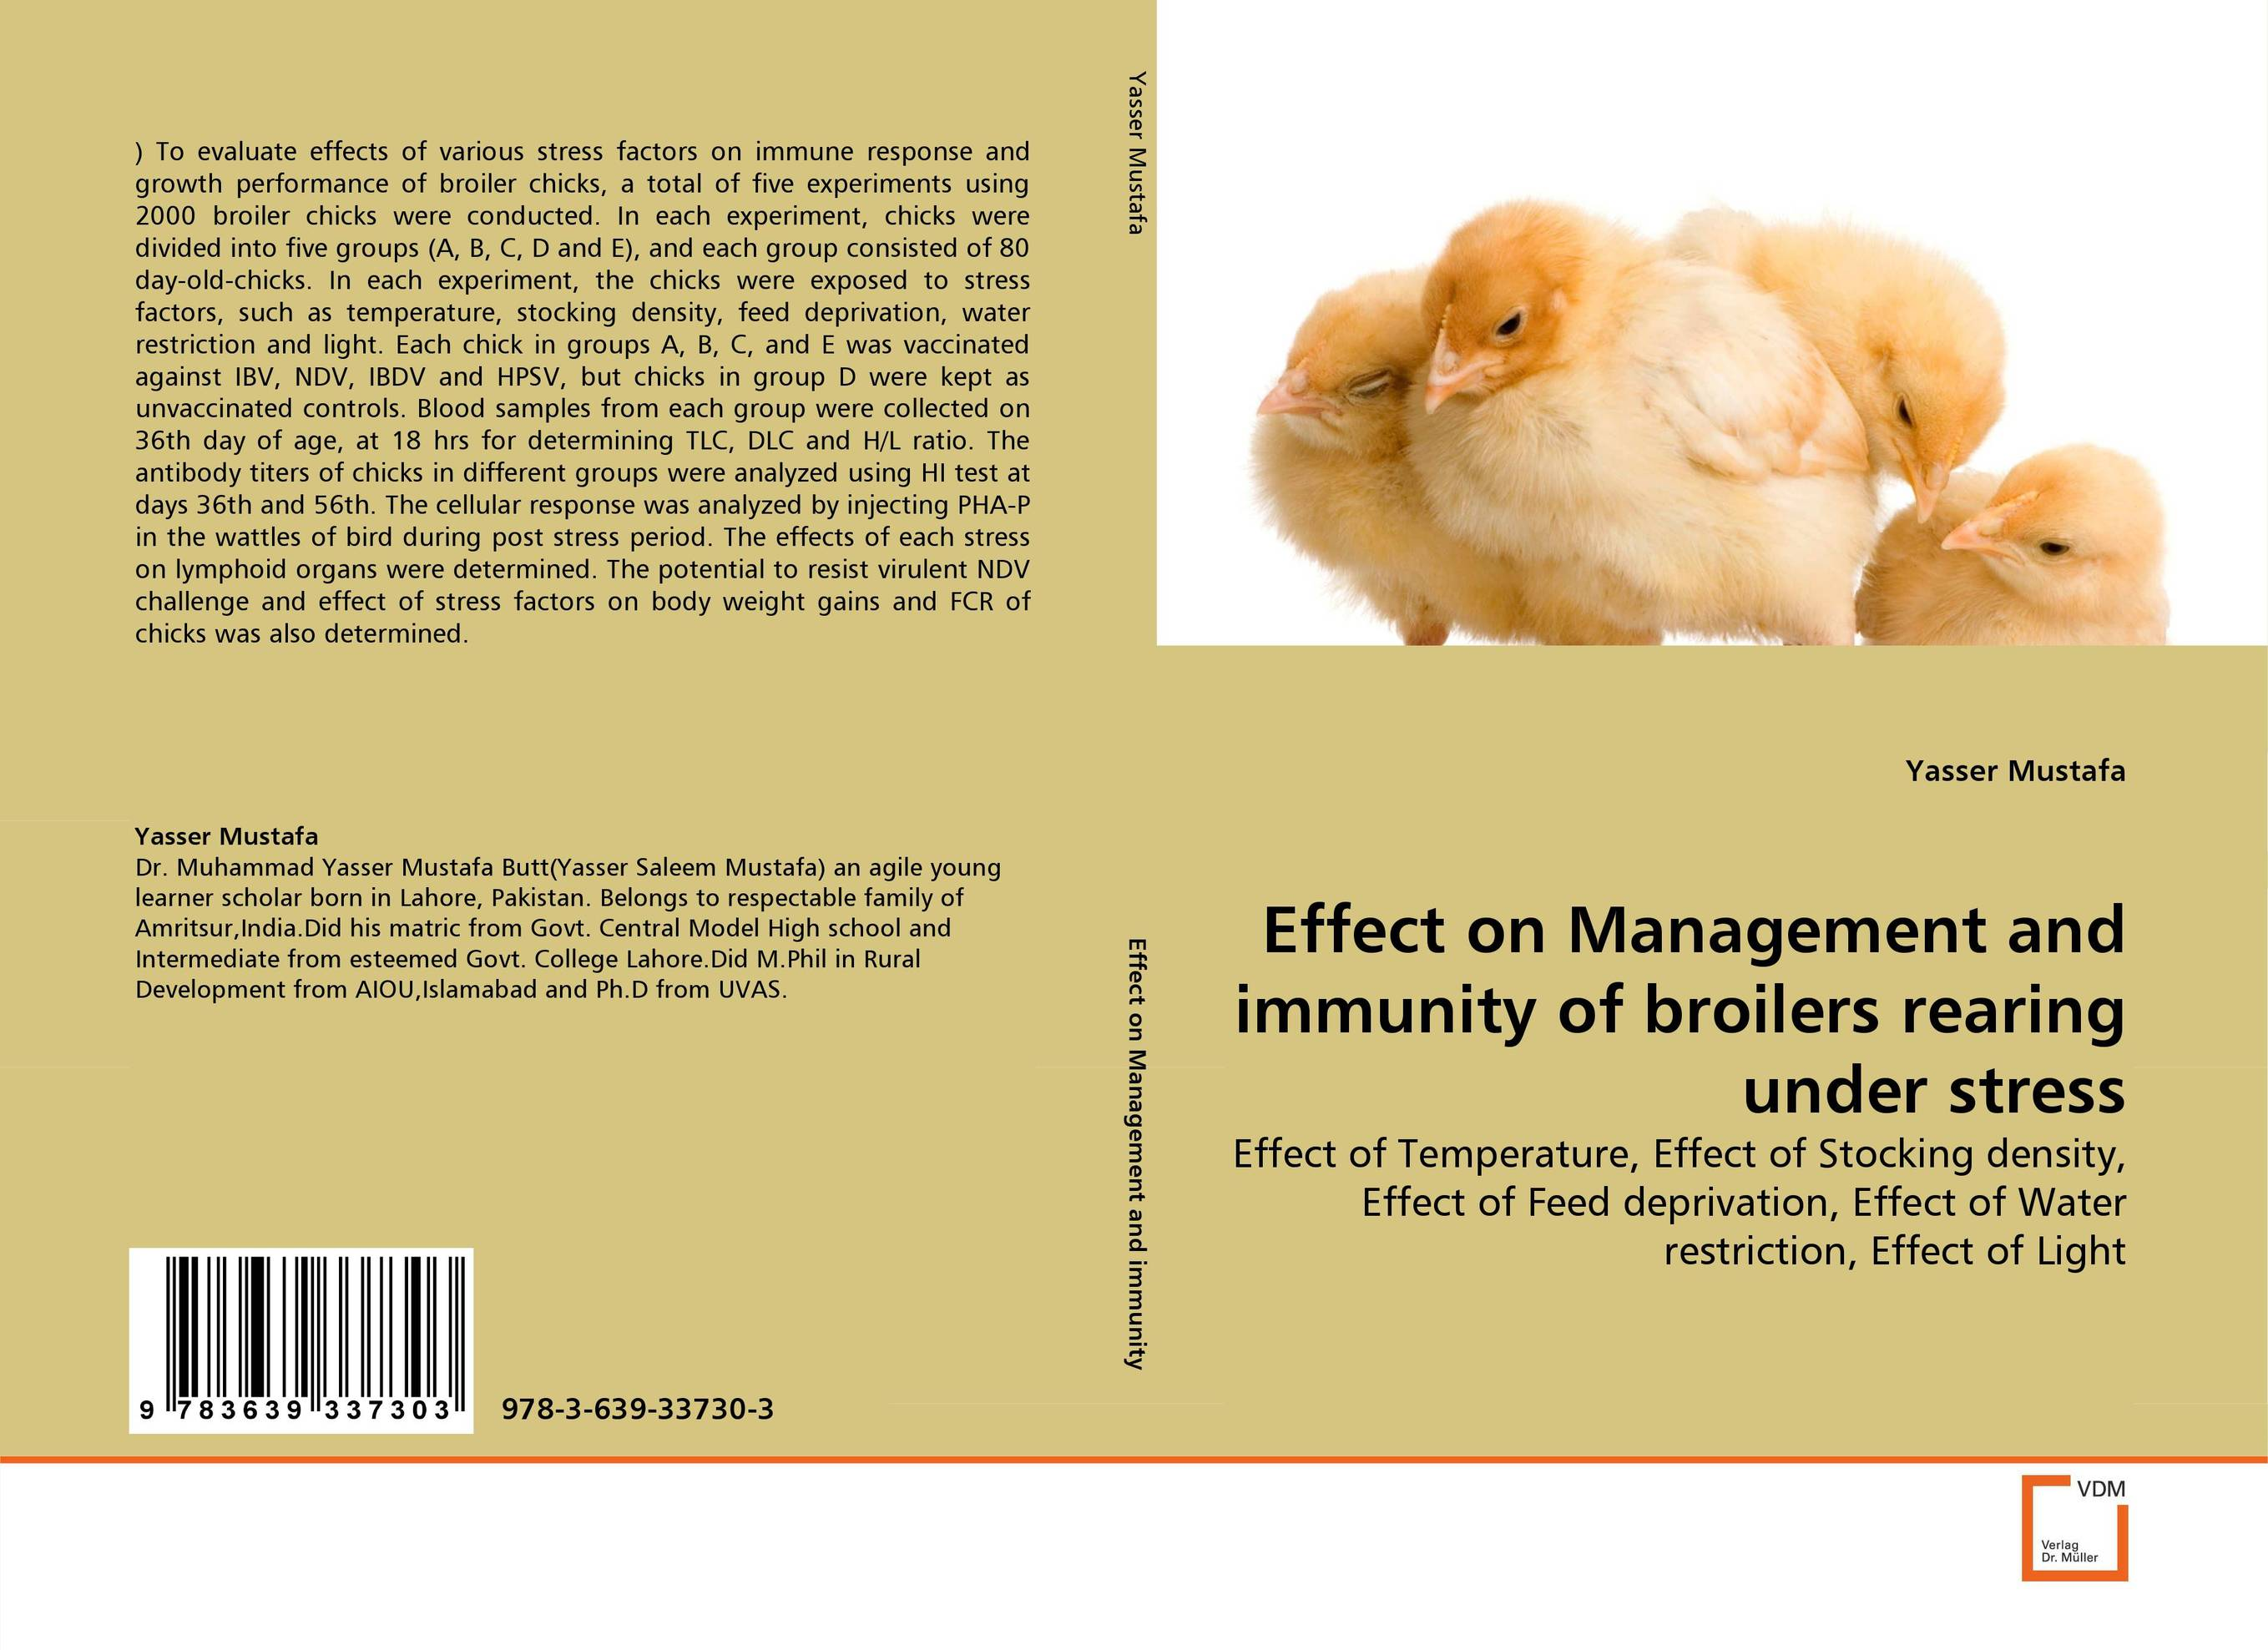 Effect on Management and immunity of broilers rearing under stress